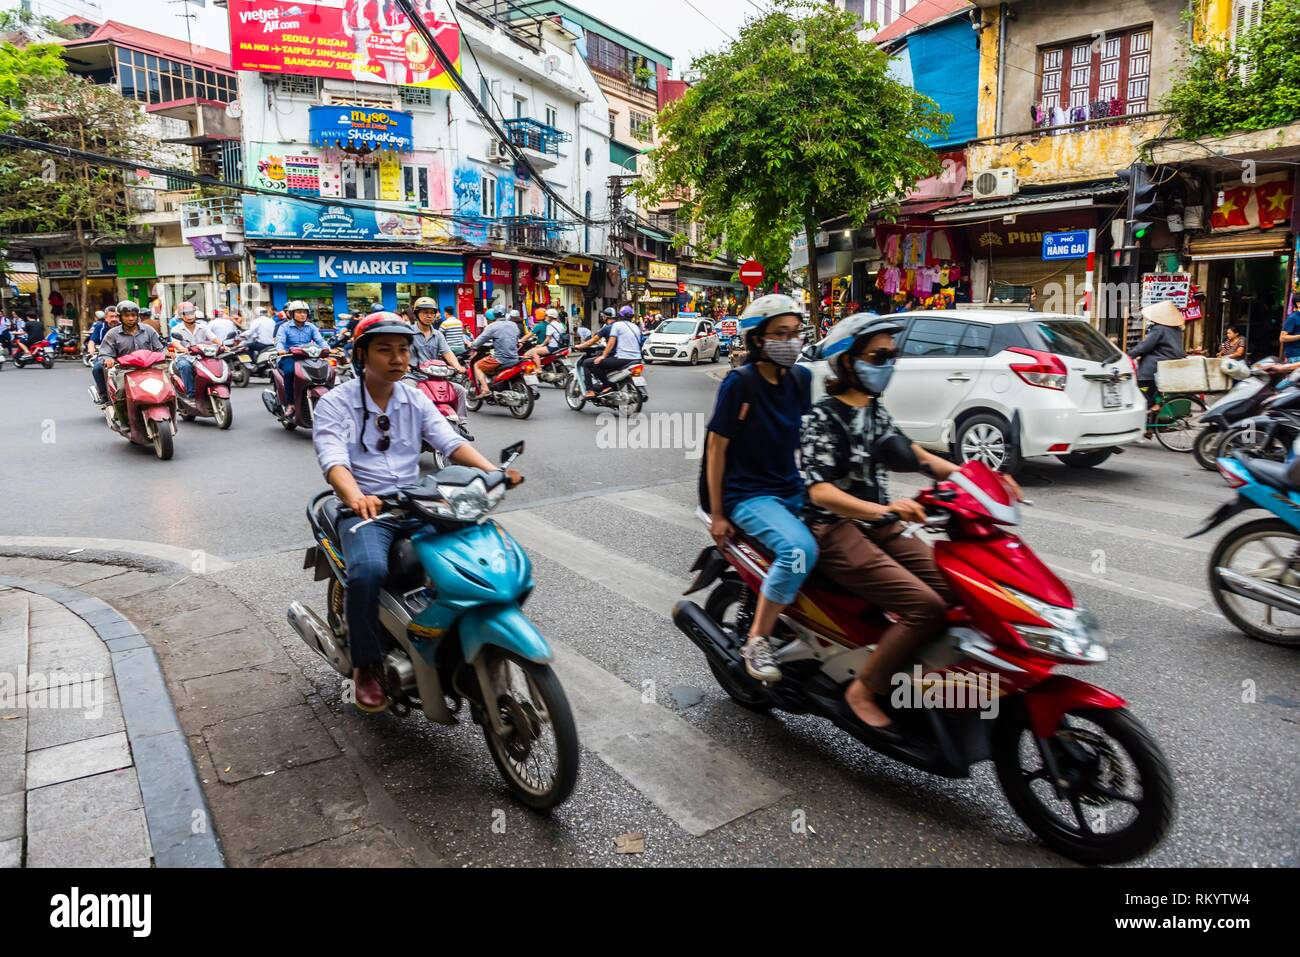 Two wheeled traffic in Hanoi, northern Vietnam. - Stock Image